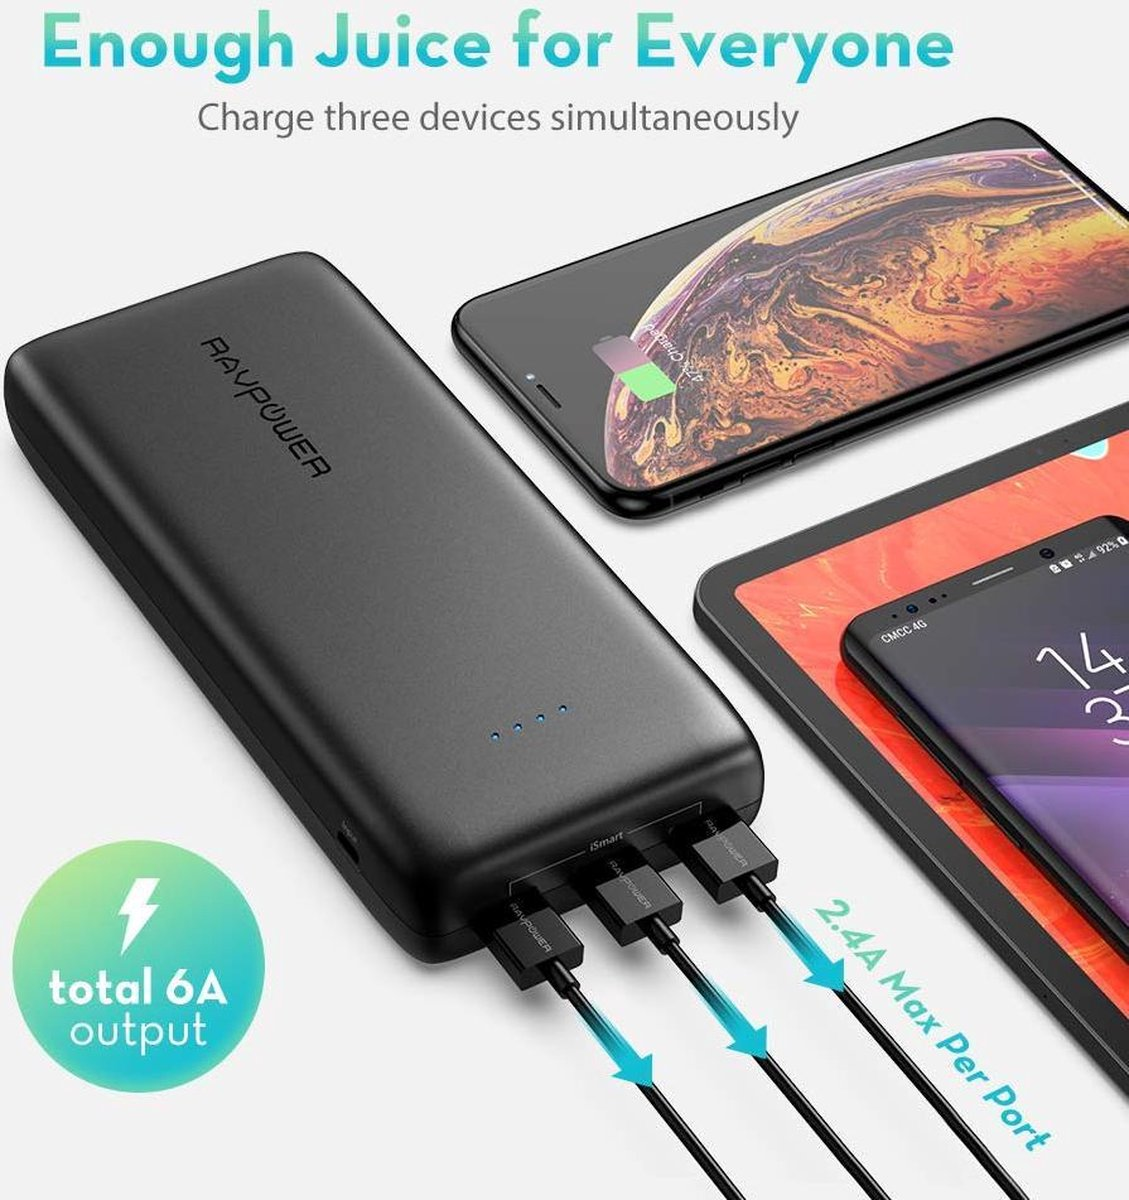 Portable Charger 32000 RAVPower 32000mAh Battery Pack 6A Output